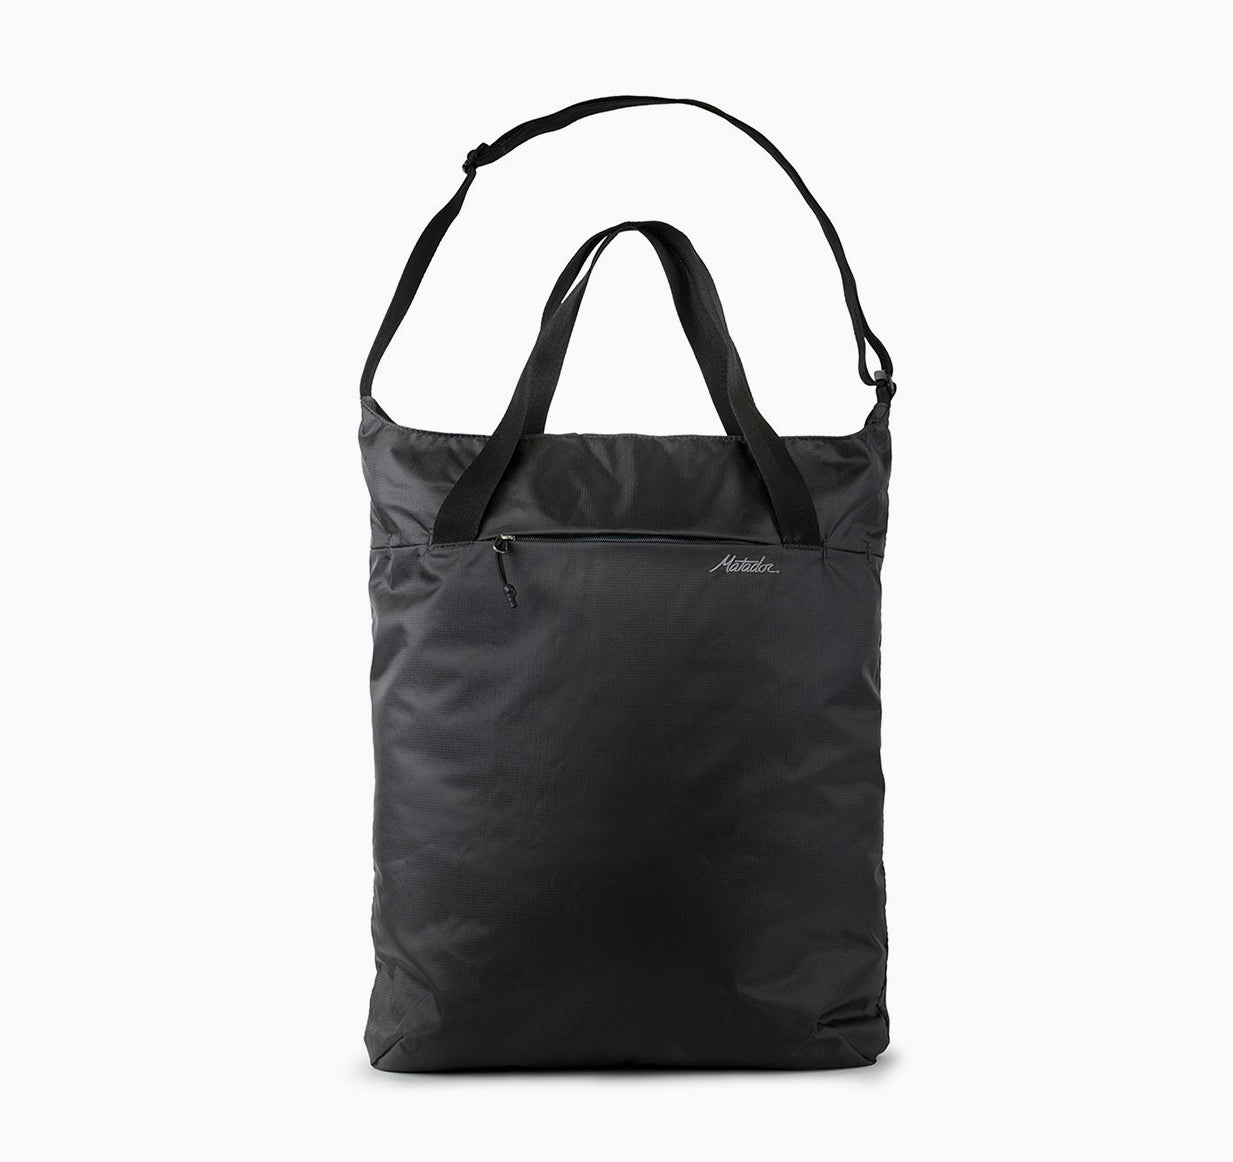 Front view of tote on white background